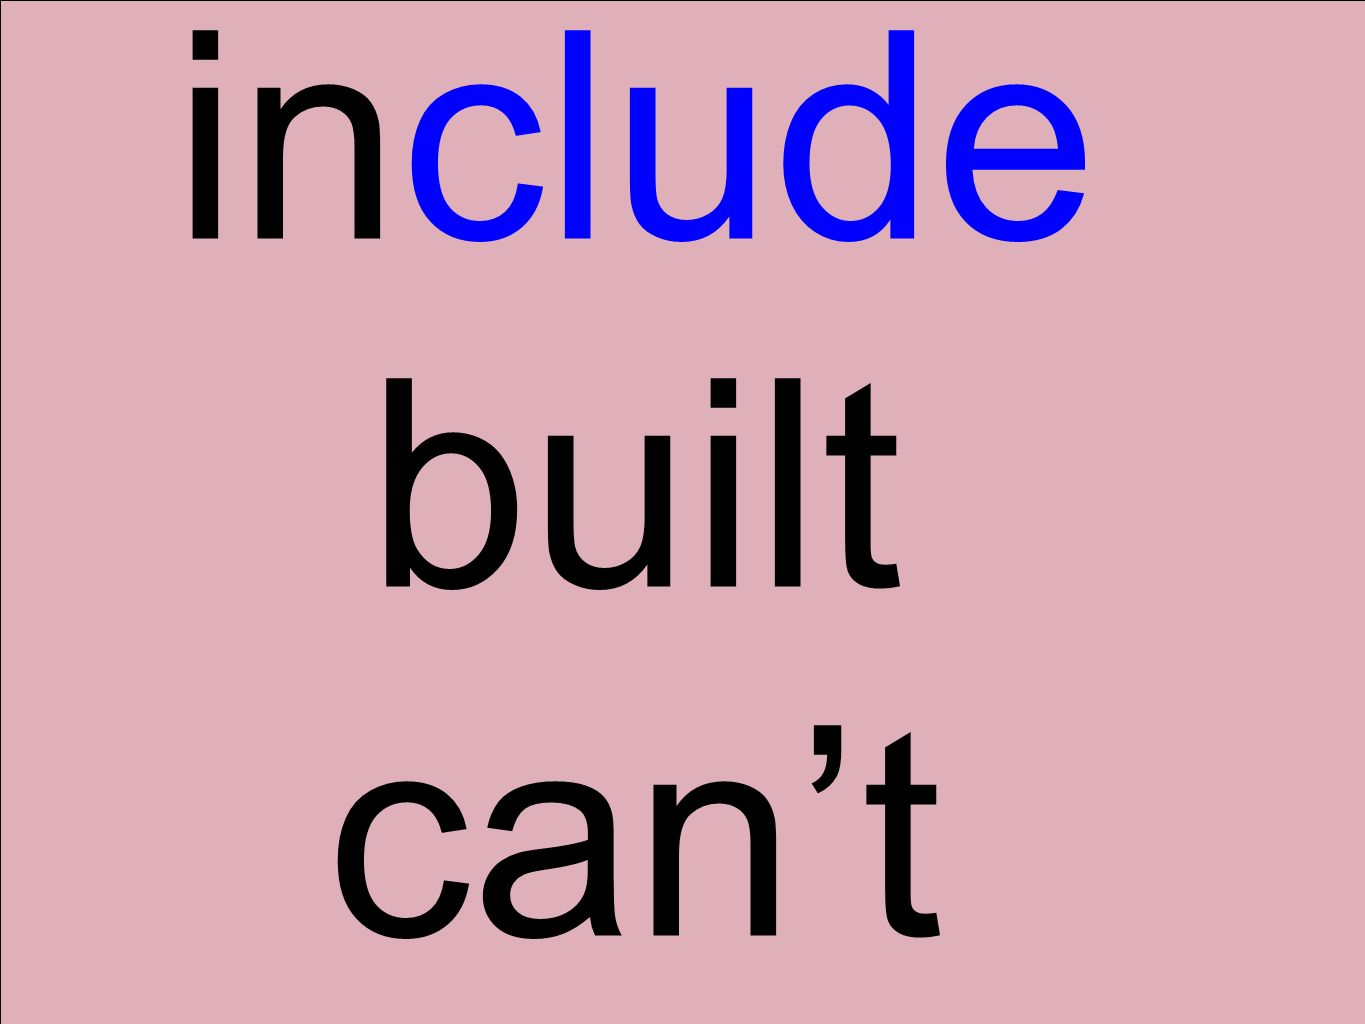 include built can't